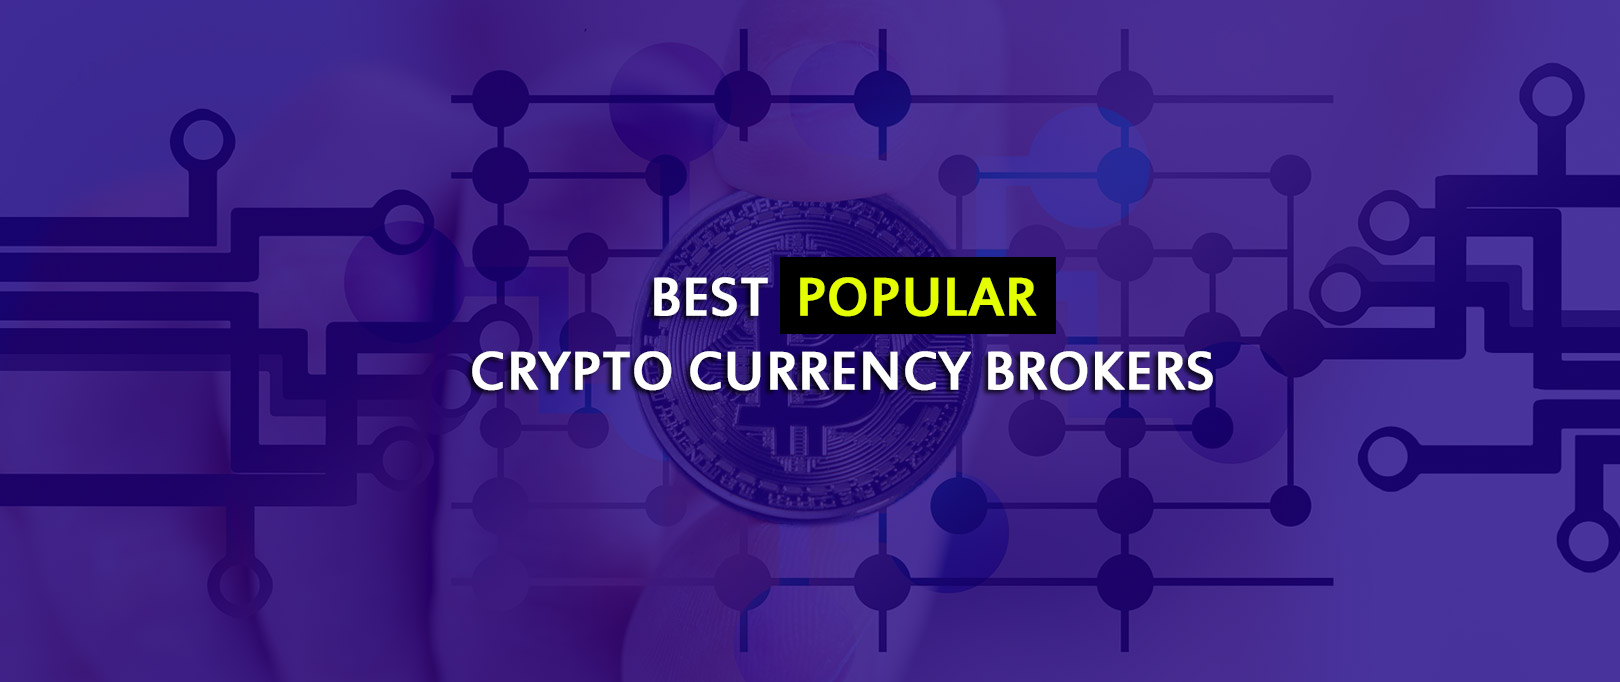 iq option and other regulated crypto currency brokers in sinhala for sri lankans by Prathilaba